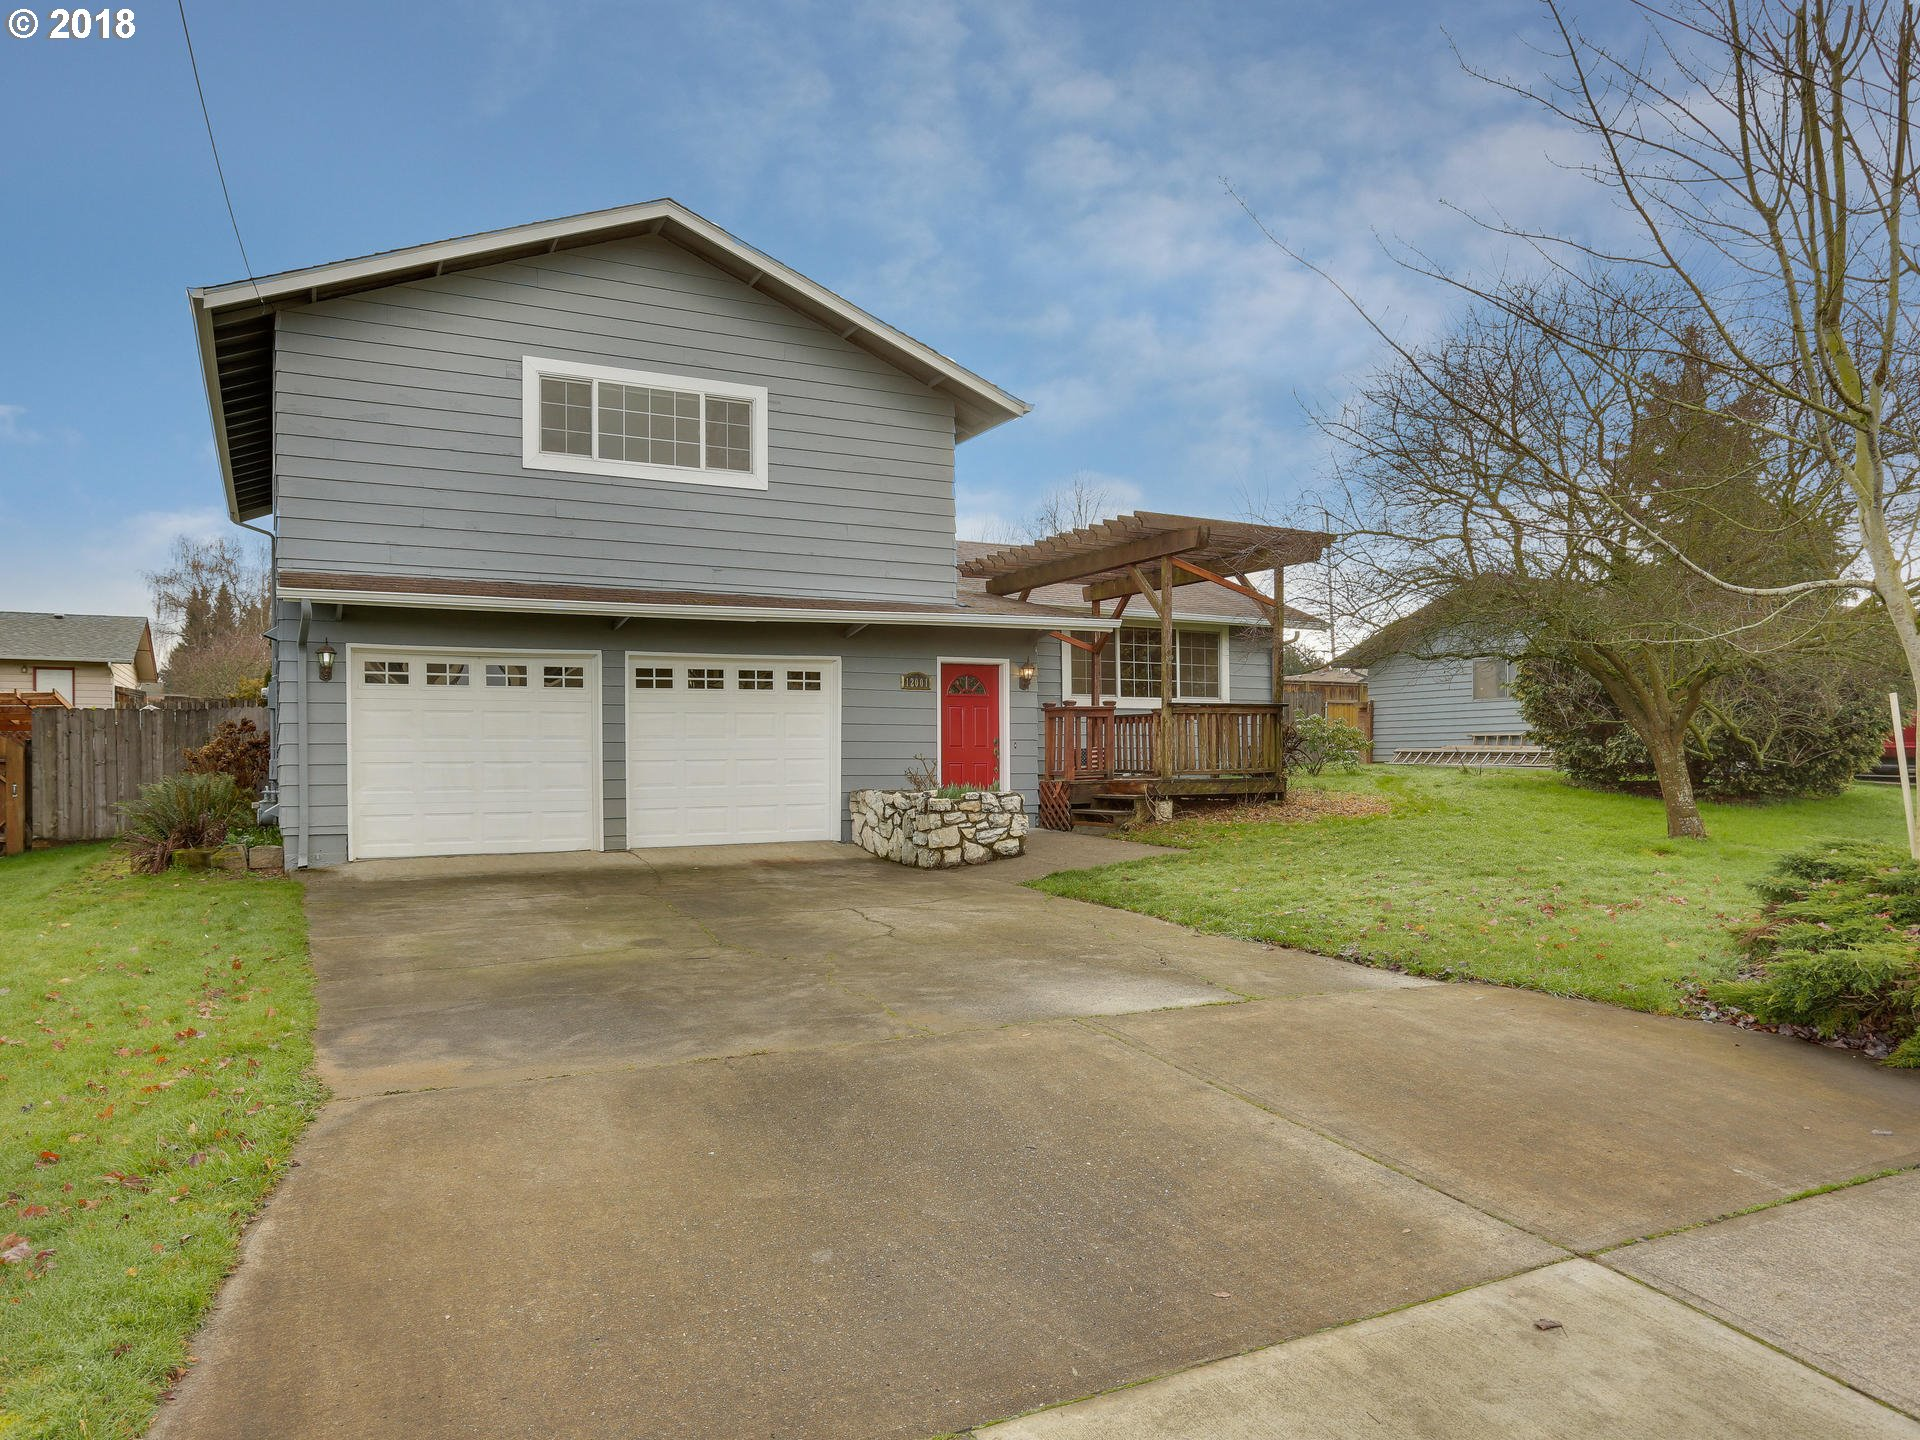 12001 NW 36th Ave, Vancouver, WA 98685